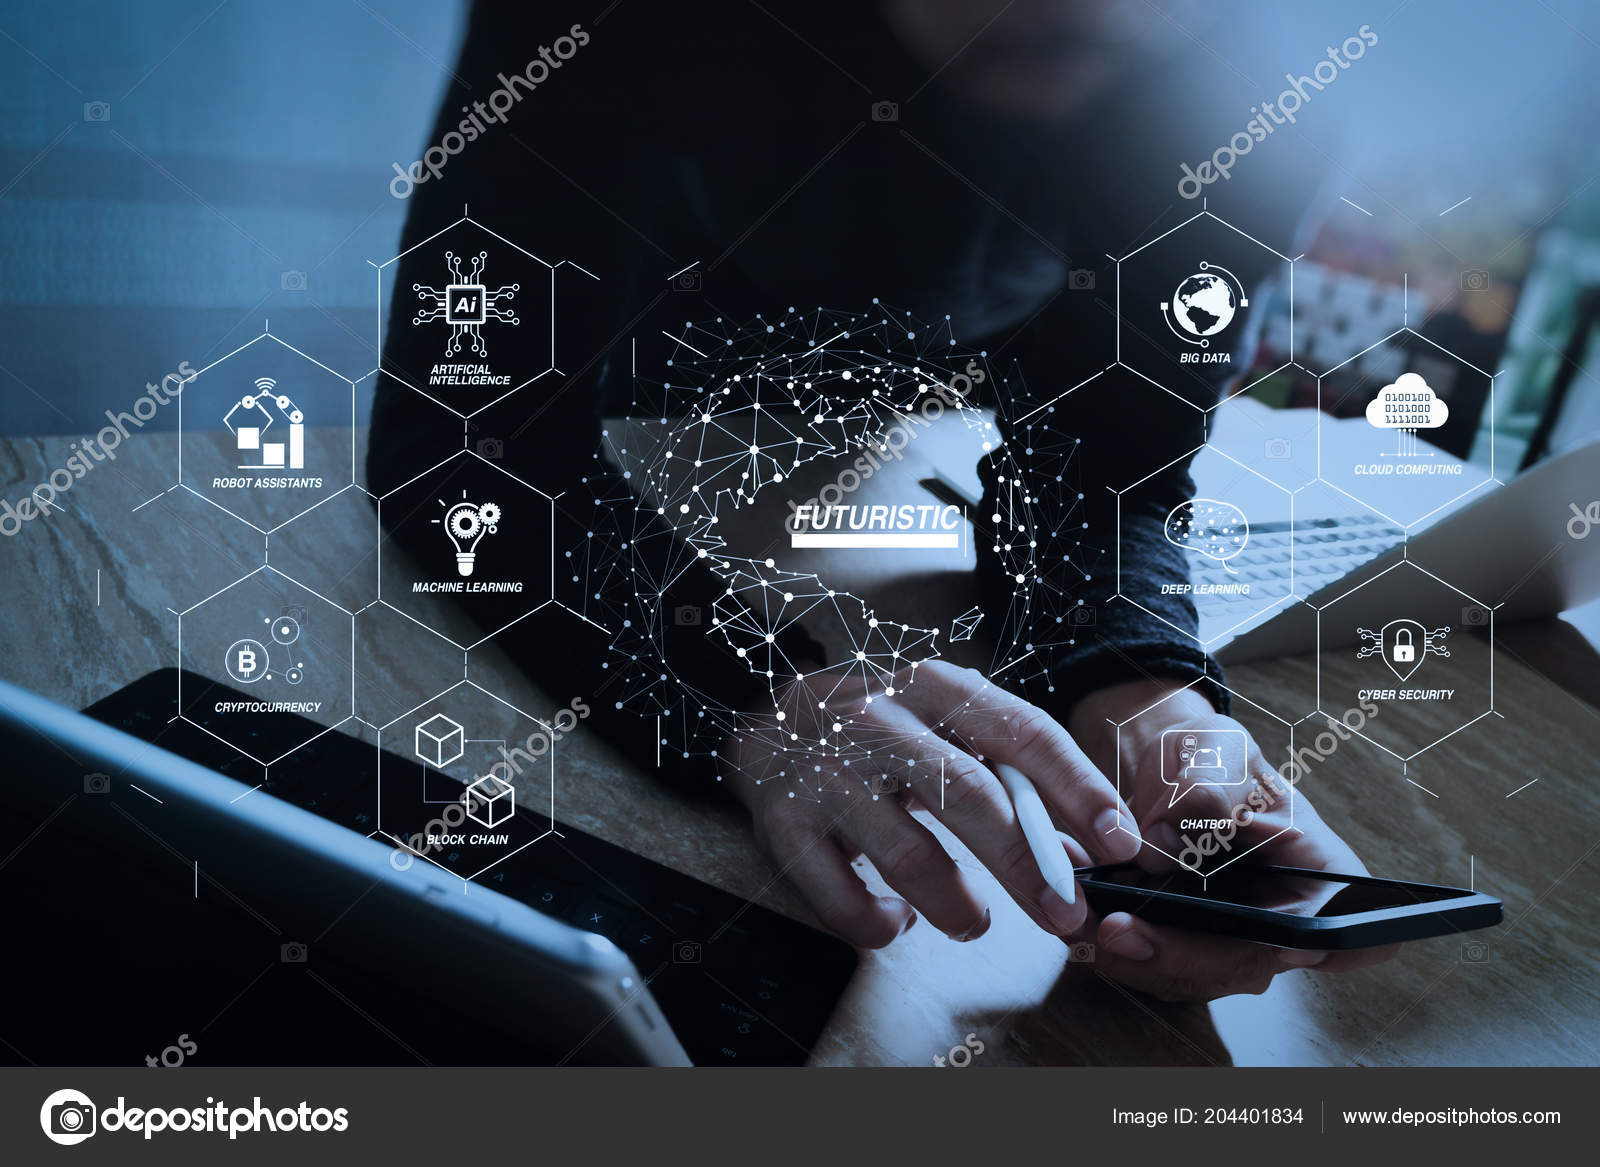 Futuristic industry business virtual diagram robot assistant cloud futuristic in industry 40 and business virtual diagram with ai robot assistant cloud big data and automation designer using smart phone and keyboard ccuart Gallery